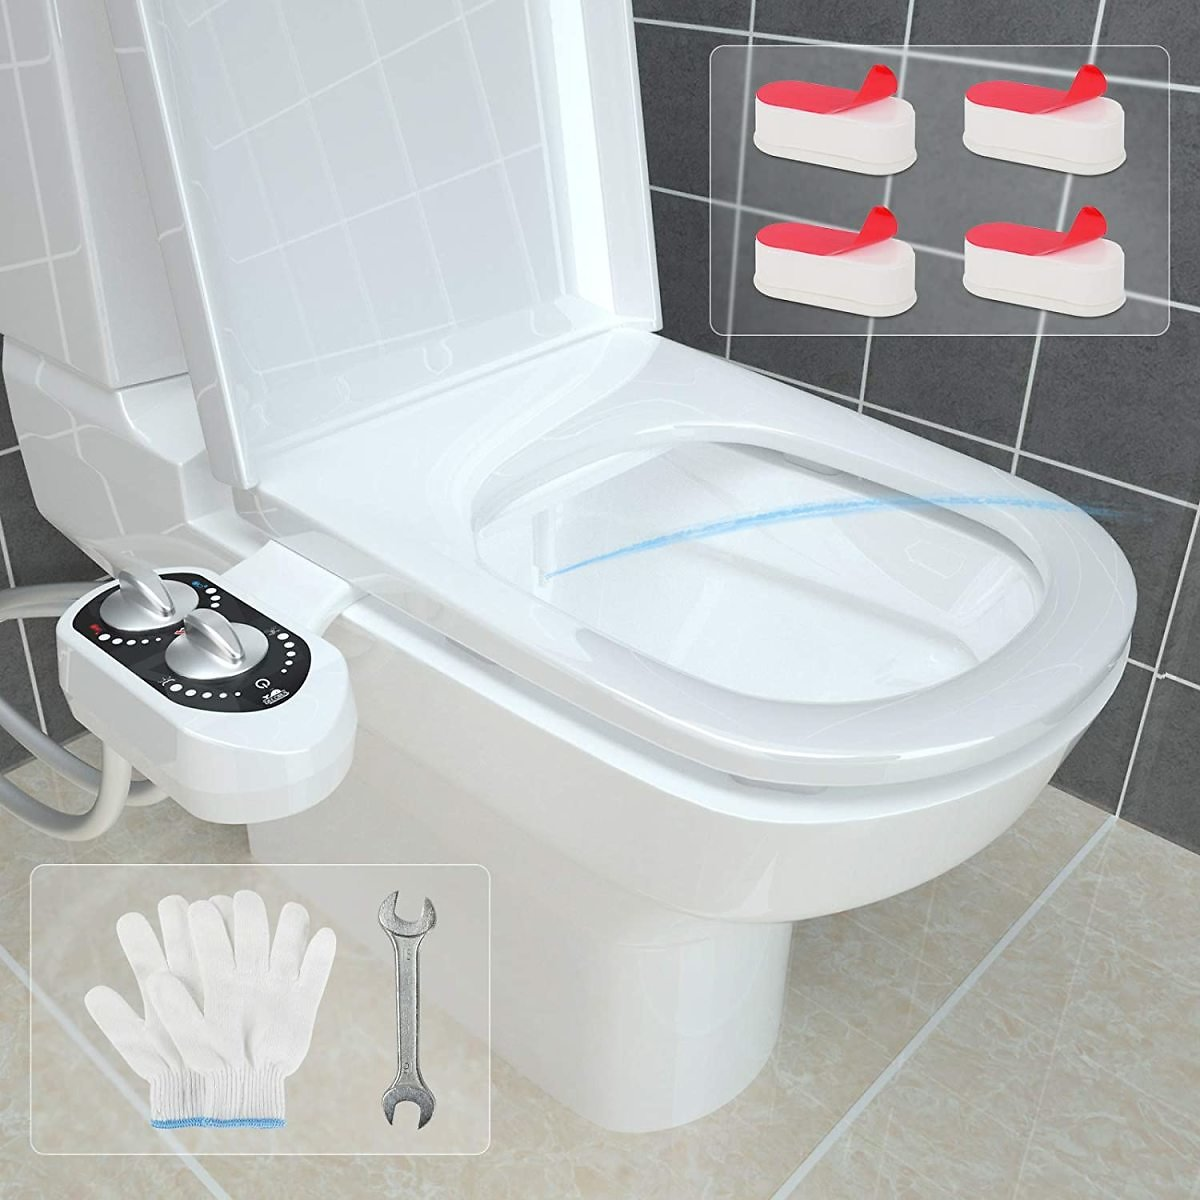 Save 50% On Bidet Attachments with Promo Code 50ZXBKJ5 On Amazon.com